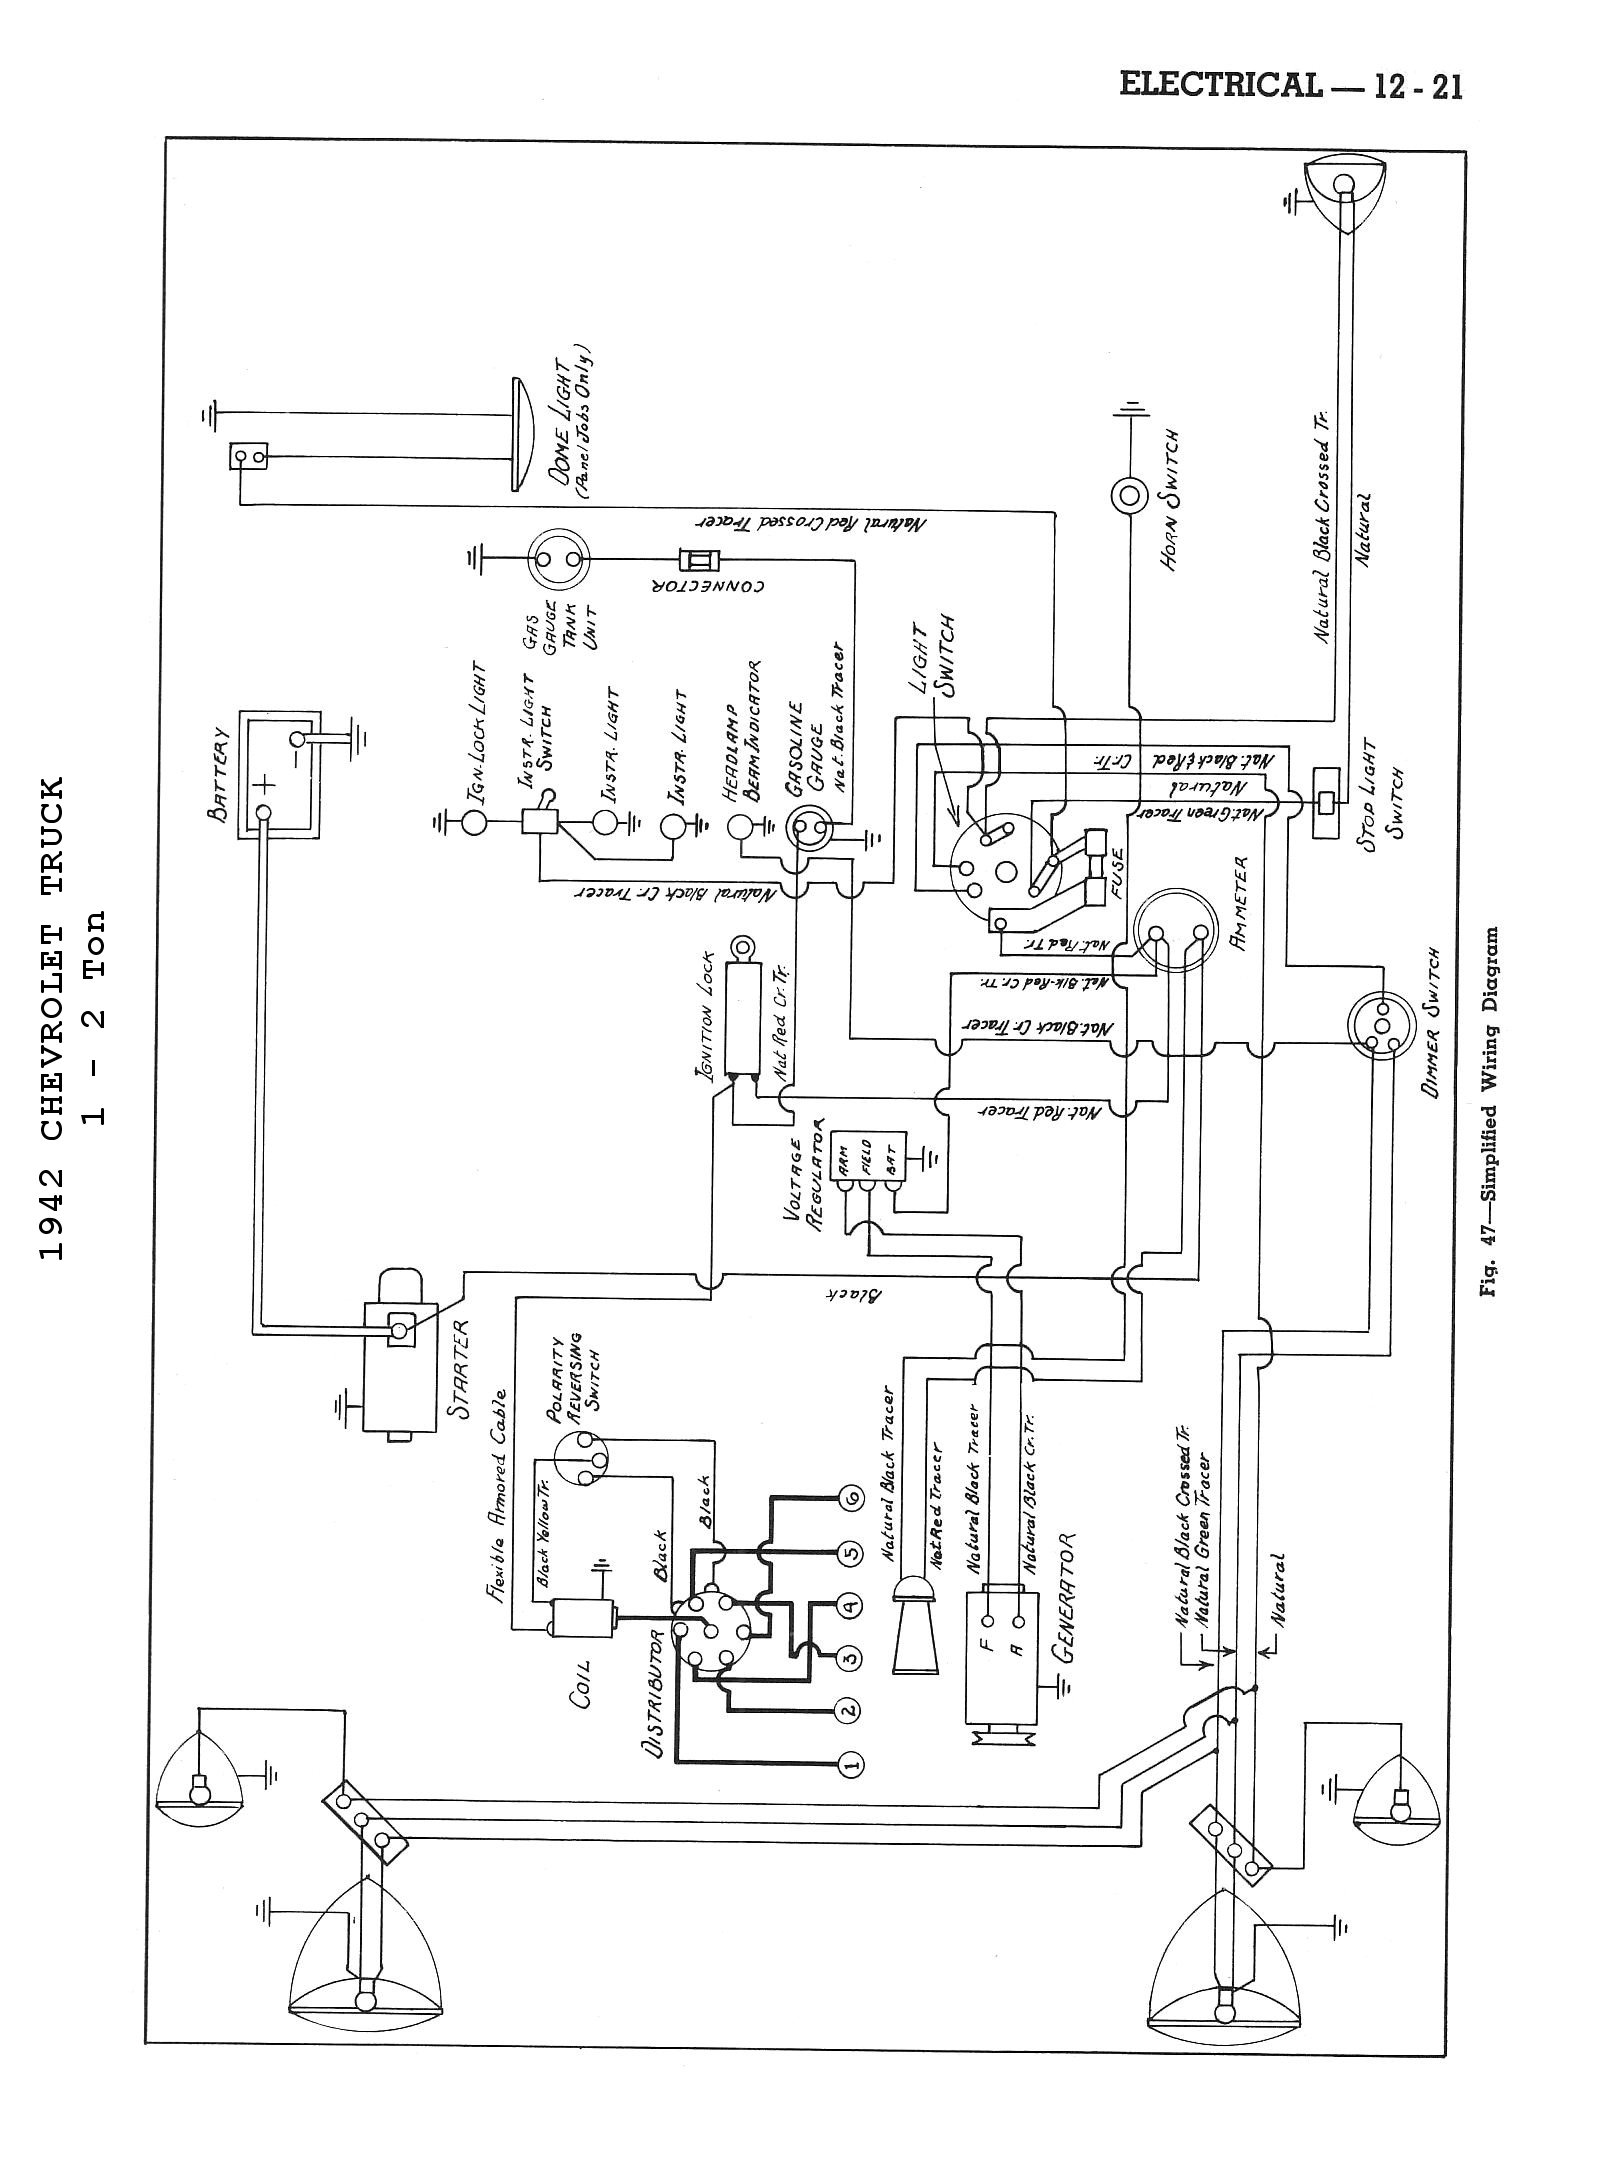 Flathead drawings electrical moreover 1955 Buick Century Wiring Diagram also Suspension Wrangler Tj together with Flathead drawings trans together with 1951 Car Wiring. on 1950 mercury wiring diagram